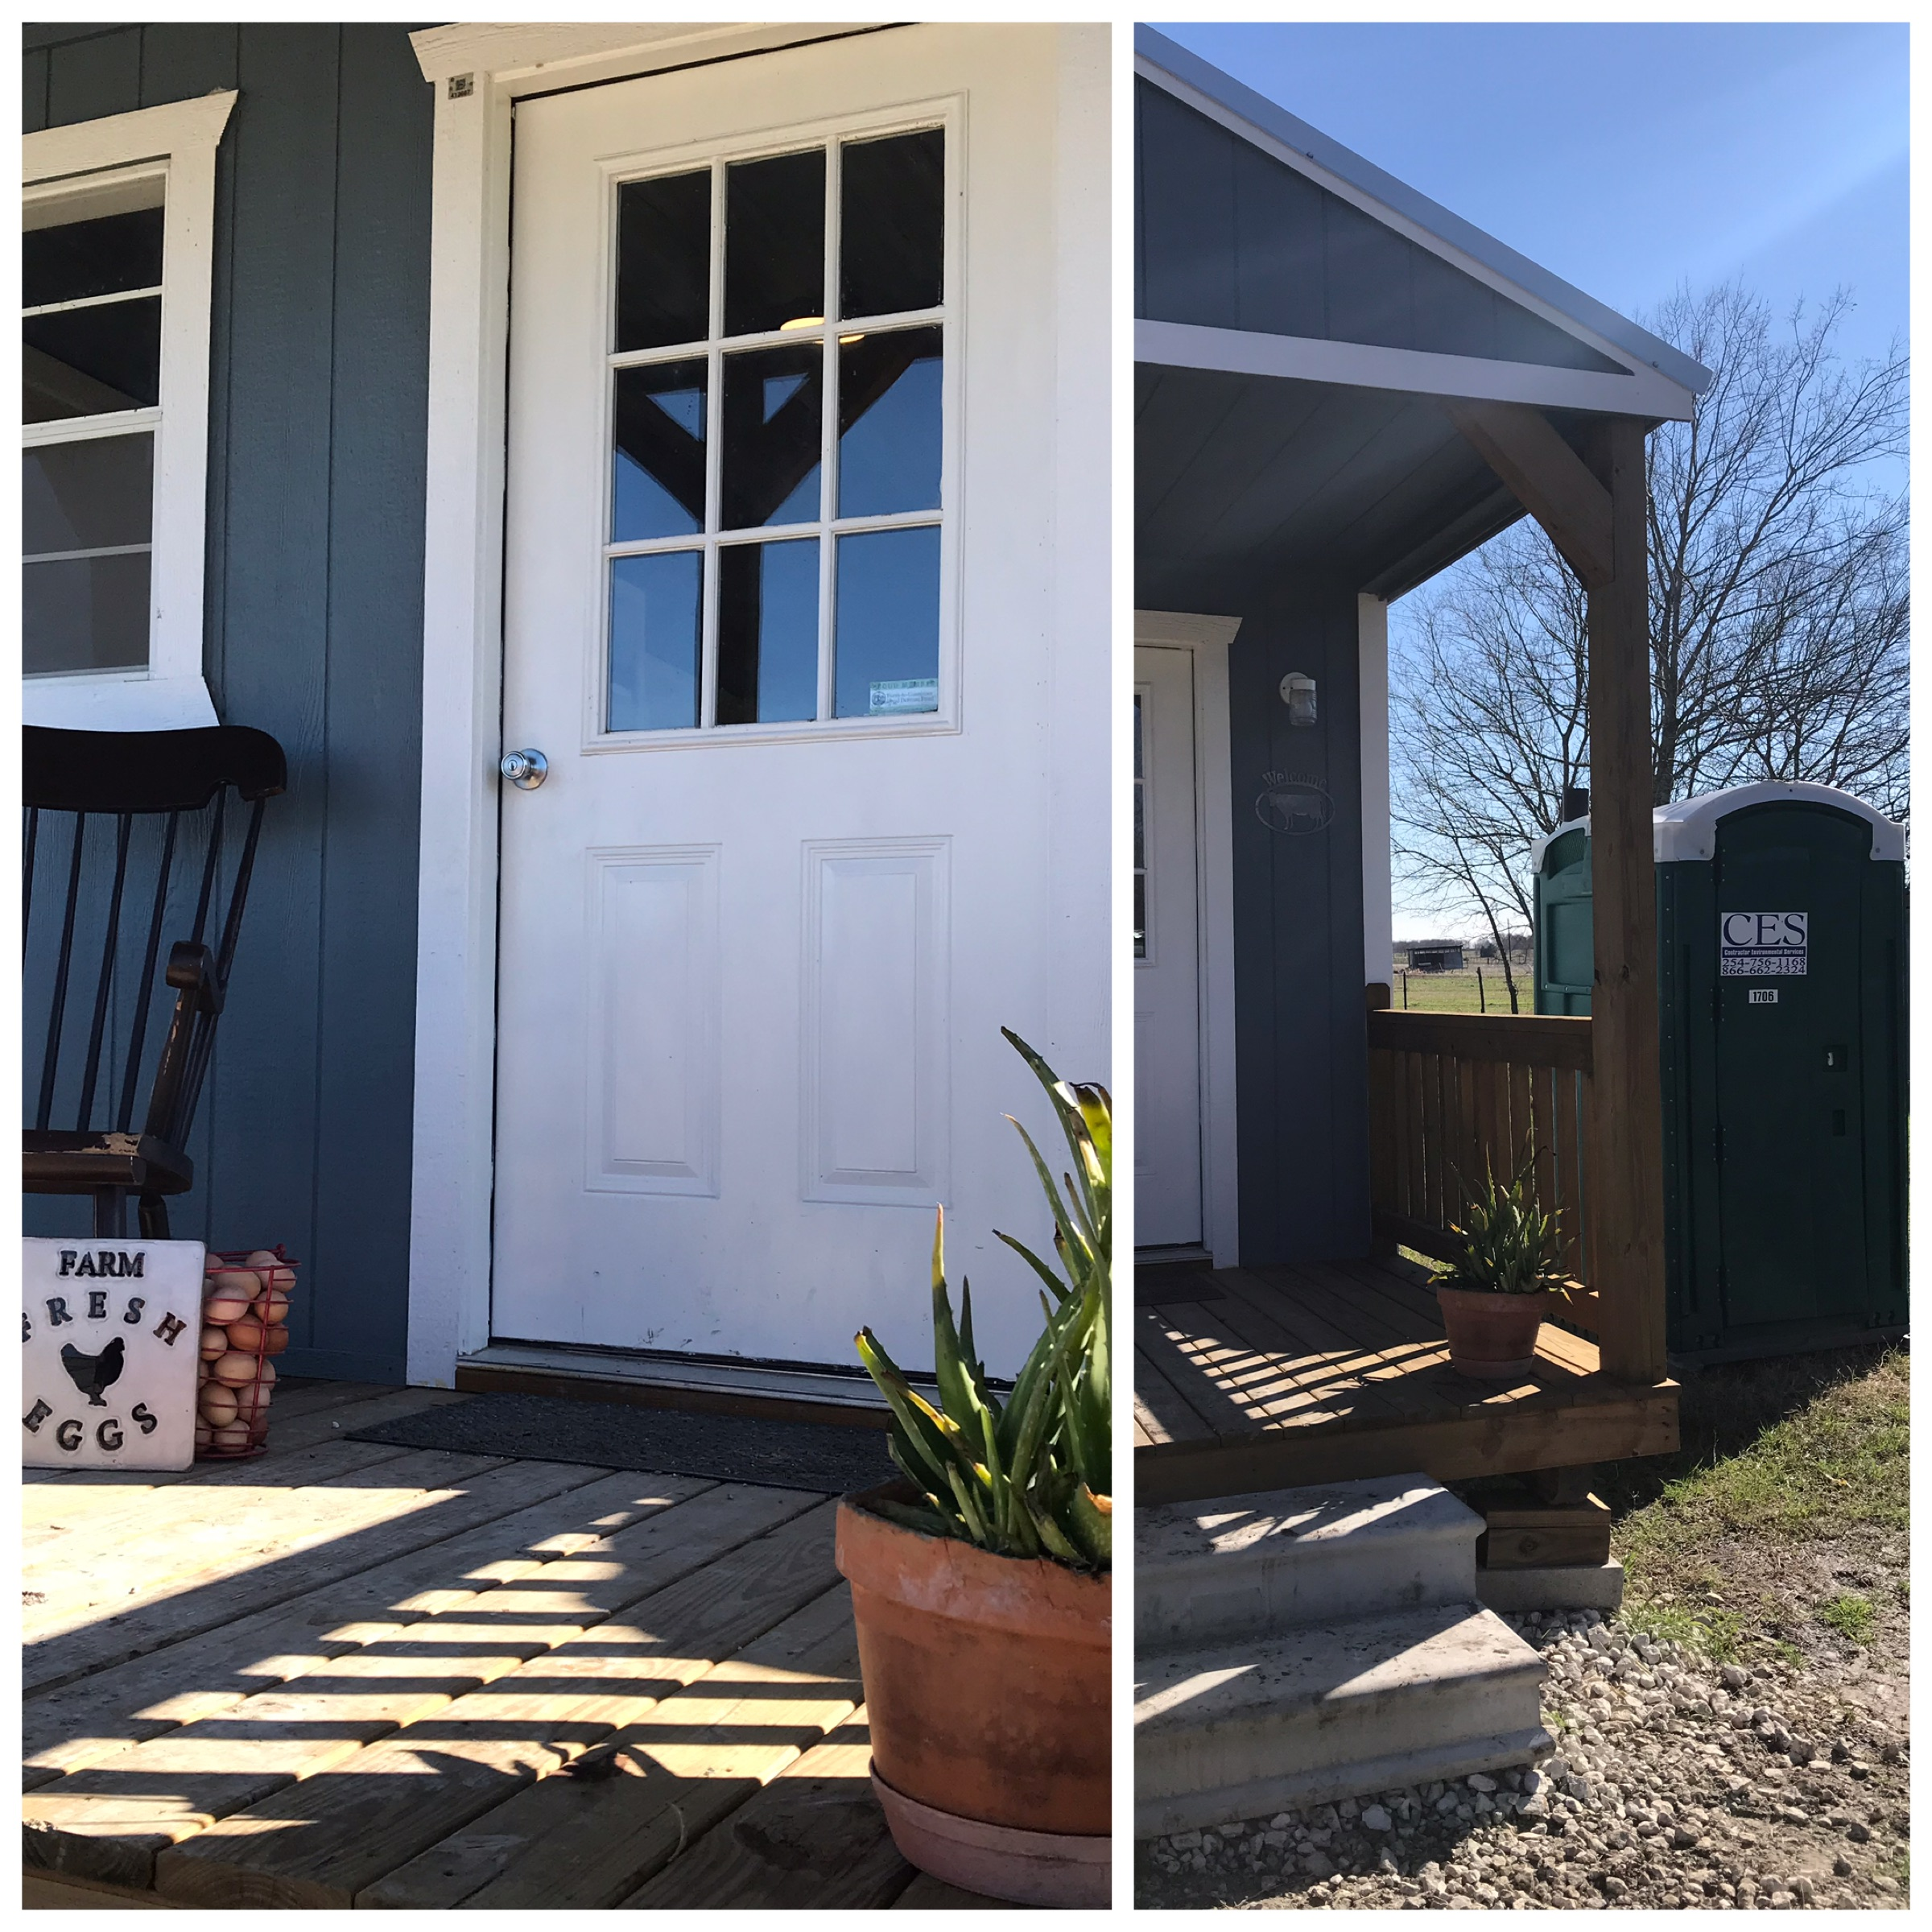 On the left - look at my Instagram-perfect porch! But WAIT - really there's a PortaPotty in plain view when you drive up!